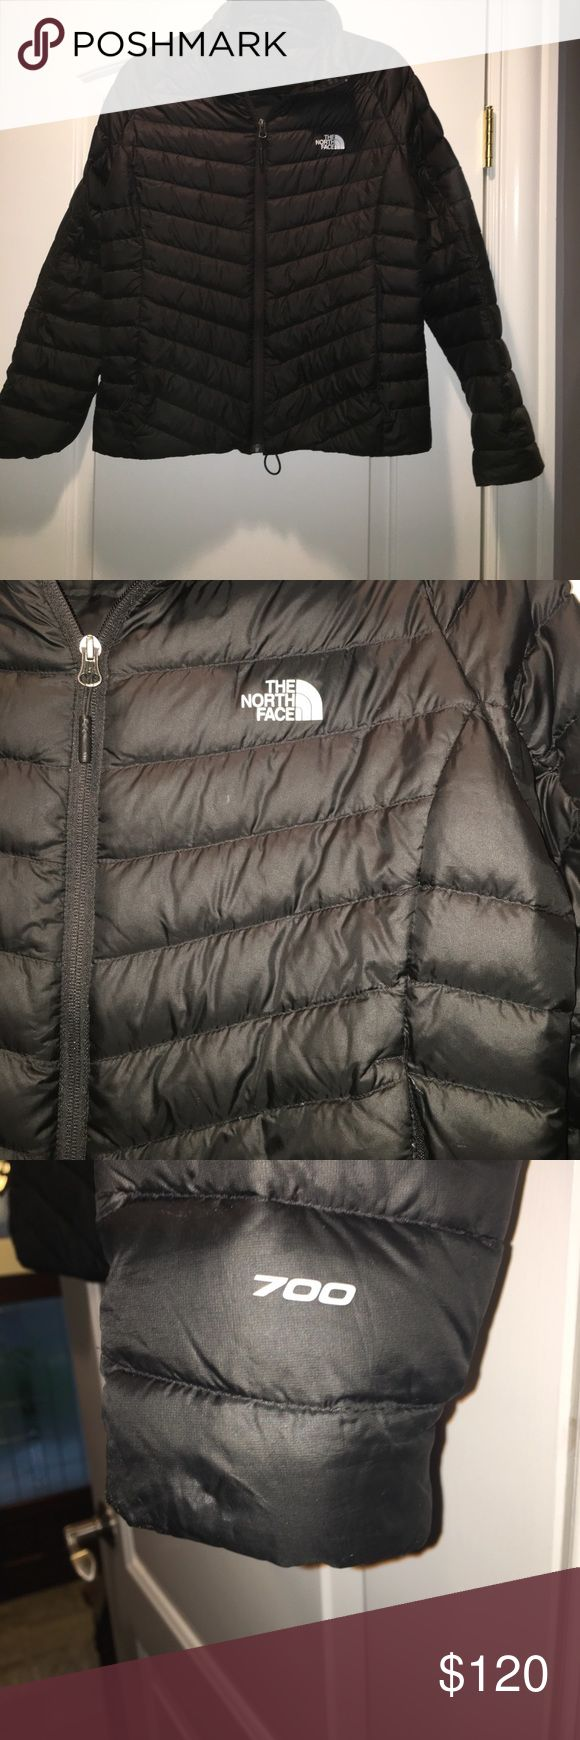 The North Face Down Jacket Ladies Size M Great condition The North Face Jackets & Coats Puffers